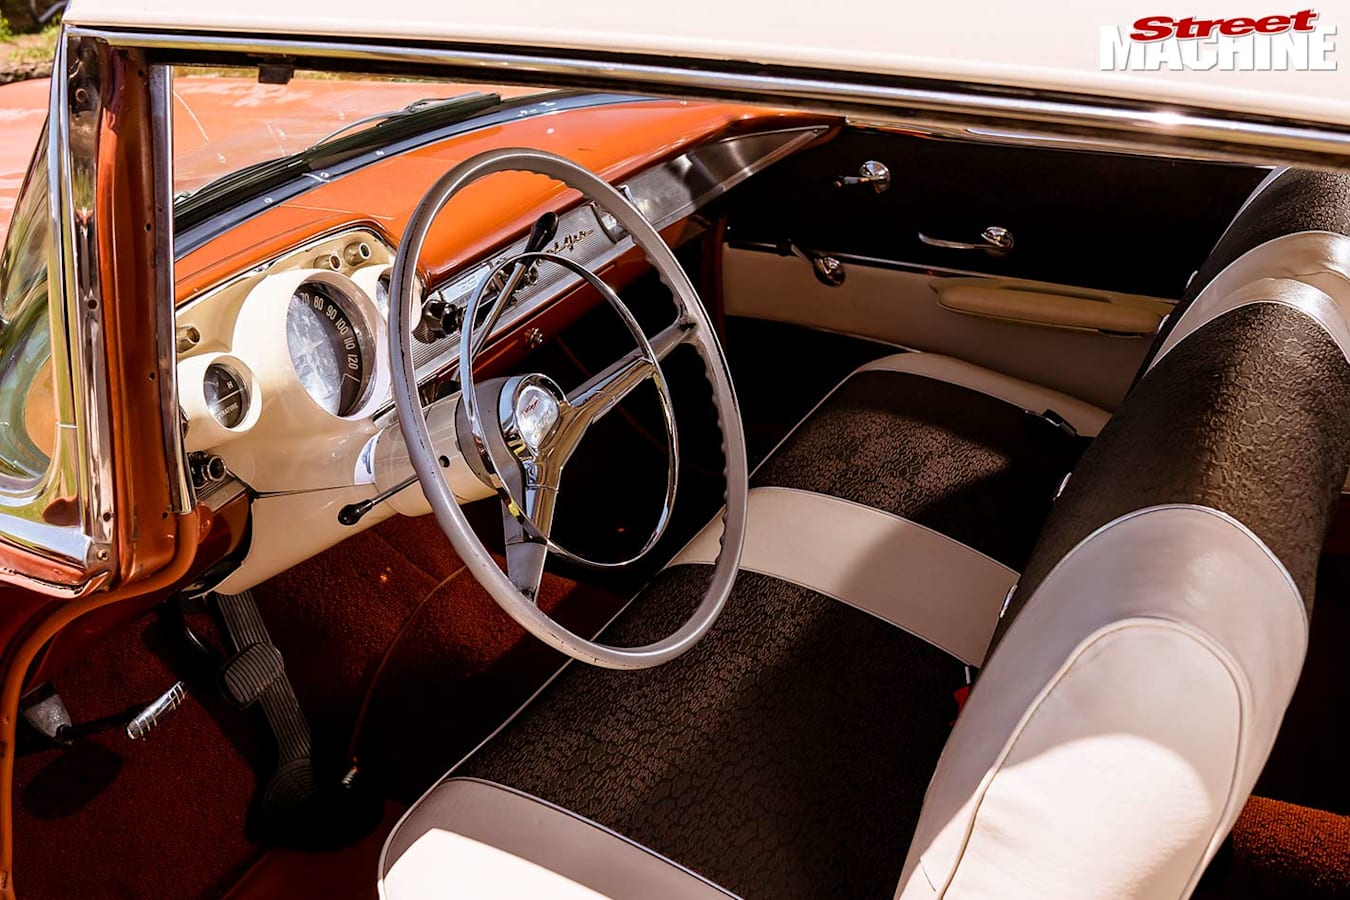 1957 Chev Bel Air interior front